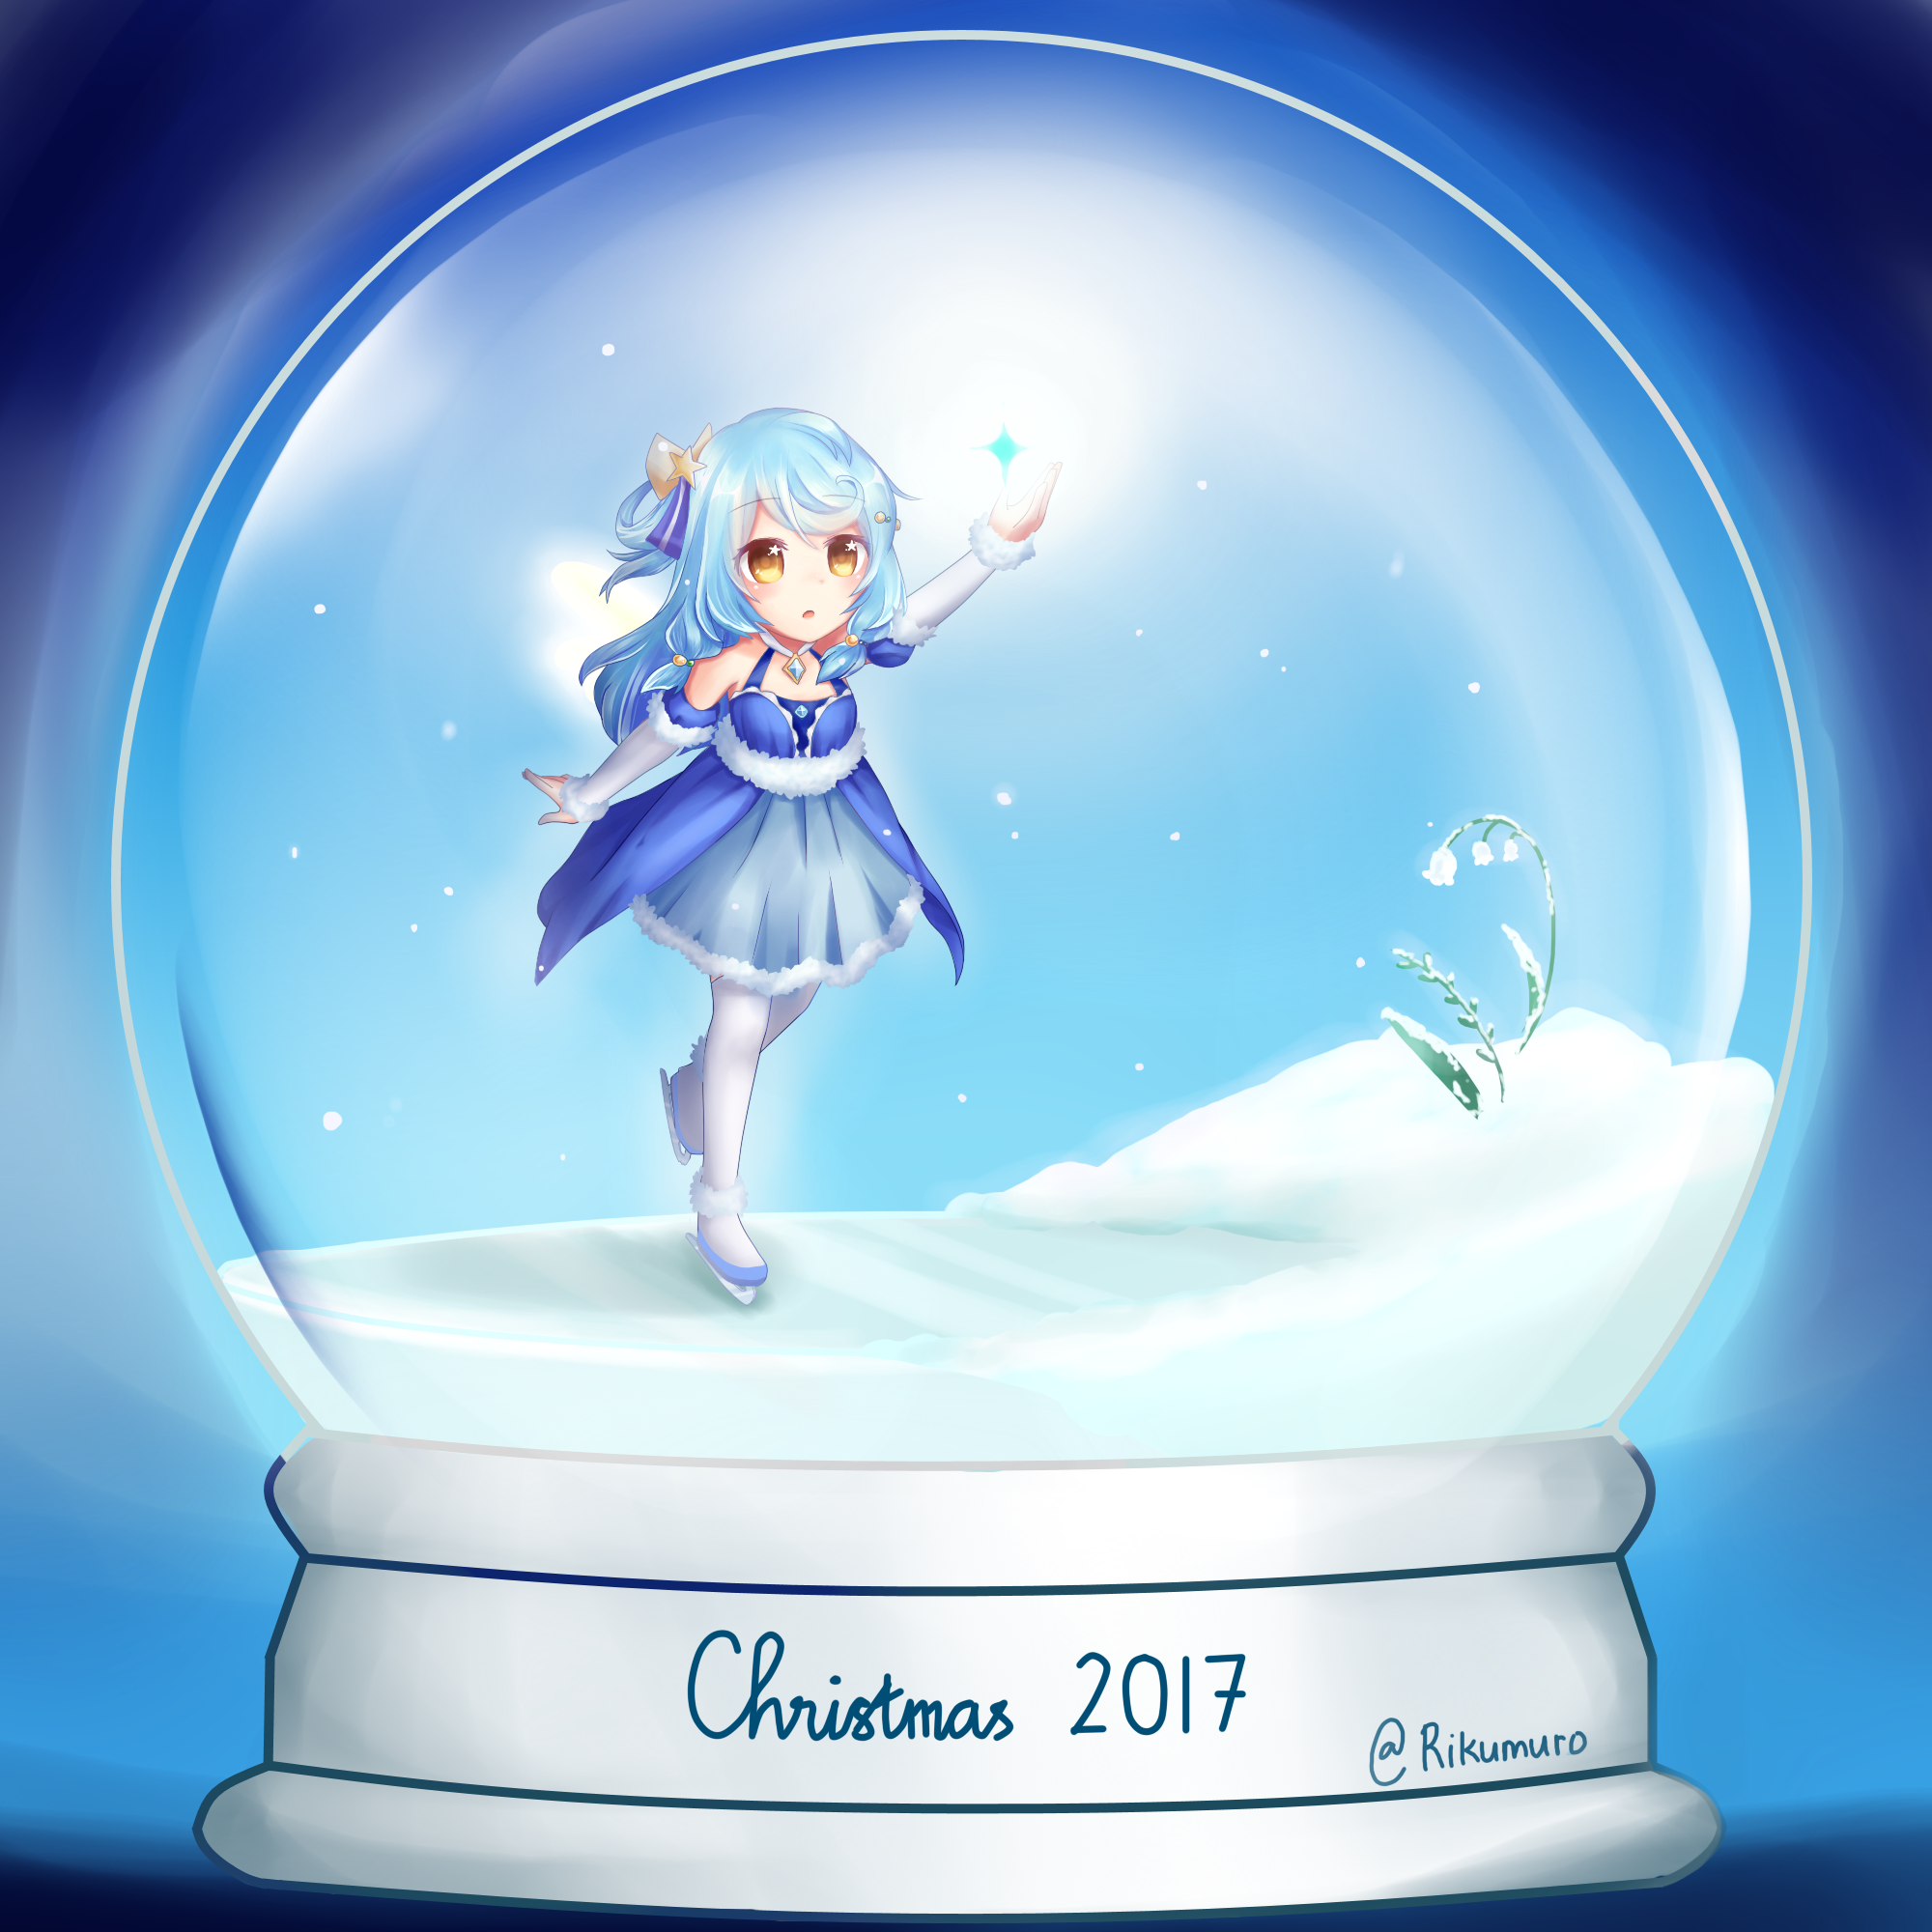 marisa_on_ice_snow_globe_by_rkmr_x-dbyc3x7.png